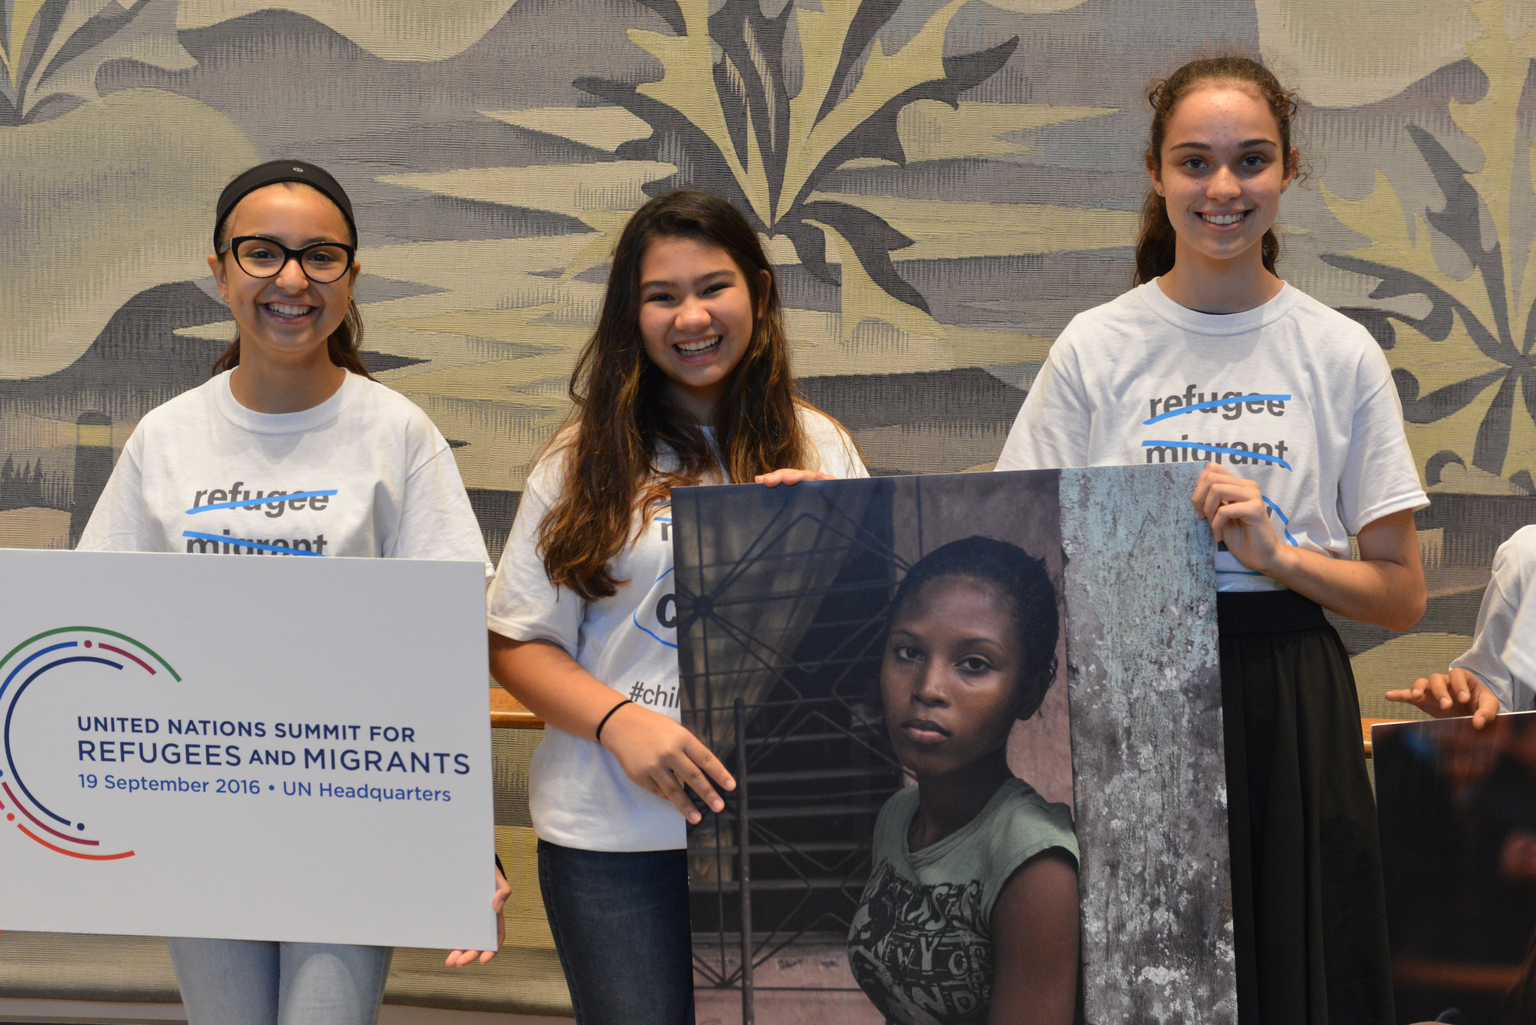 On 19 September 2016, children from the East side Middle School and P.S 119 Amersfort hold pictures of refugee and migrant children as they greet world leaders entering the General Assembly Hall to remind them to prioritize the rights of children during the high level plenary on refugees and migrant at the United Nations Headquarters in New York City.  On the morning of the United Nations? first ever summit on refugees and migrants, the U.S. Fund for UNICEF and others are reminding world leaders to put #ChildrenFirst as they address the largest humanitarian crisis of displacement since World War II.  An estimated 50 million children have been uprooted from their homes by conflict, violence, poverty, extreme weather and drought. Though many things divide nations and peoples, most can agree that children are innocent and deserve the opportunity to grow to their full potential. Though called by many names - refugees, migrants, stateless, internally displaced - they are children first.